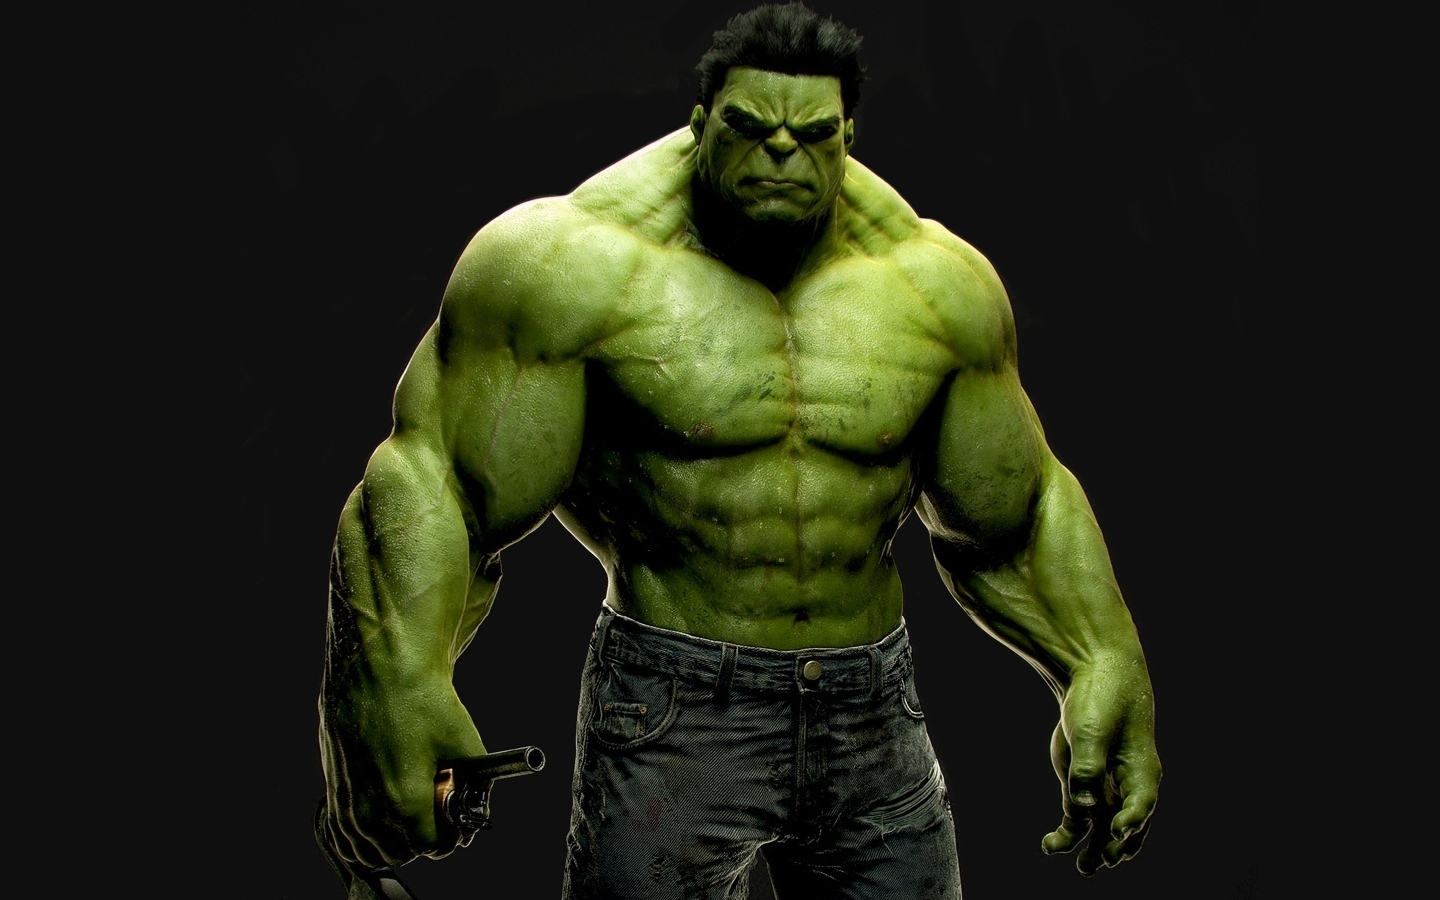 Incrivel Hulck Best big training co.: o programa incrível hulk - artigo completo